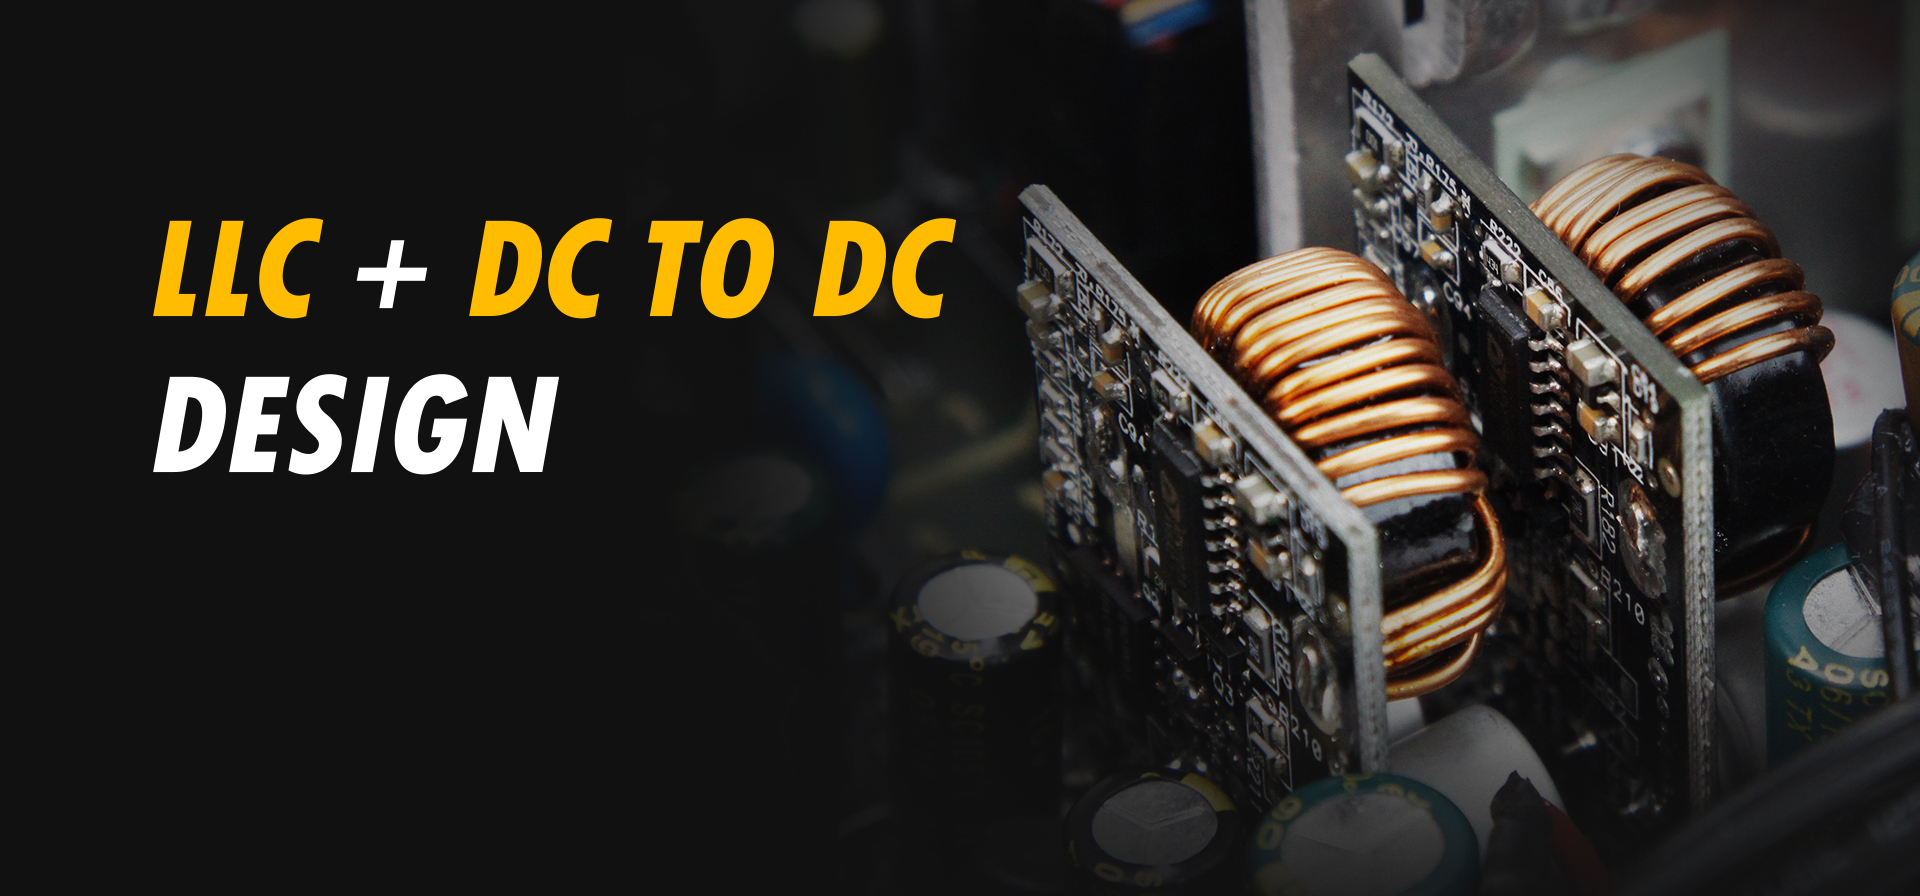 Antec NeoECO Gold ZEN Series NE500G ZEN Power Supply LLC + DC T0 DC close-up